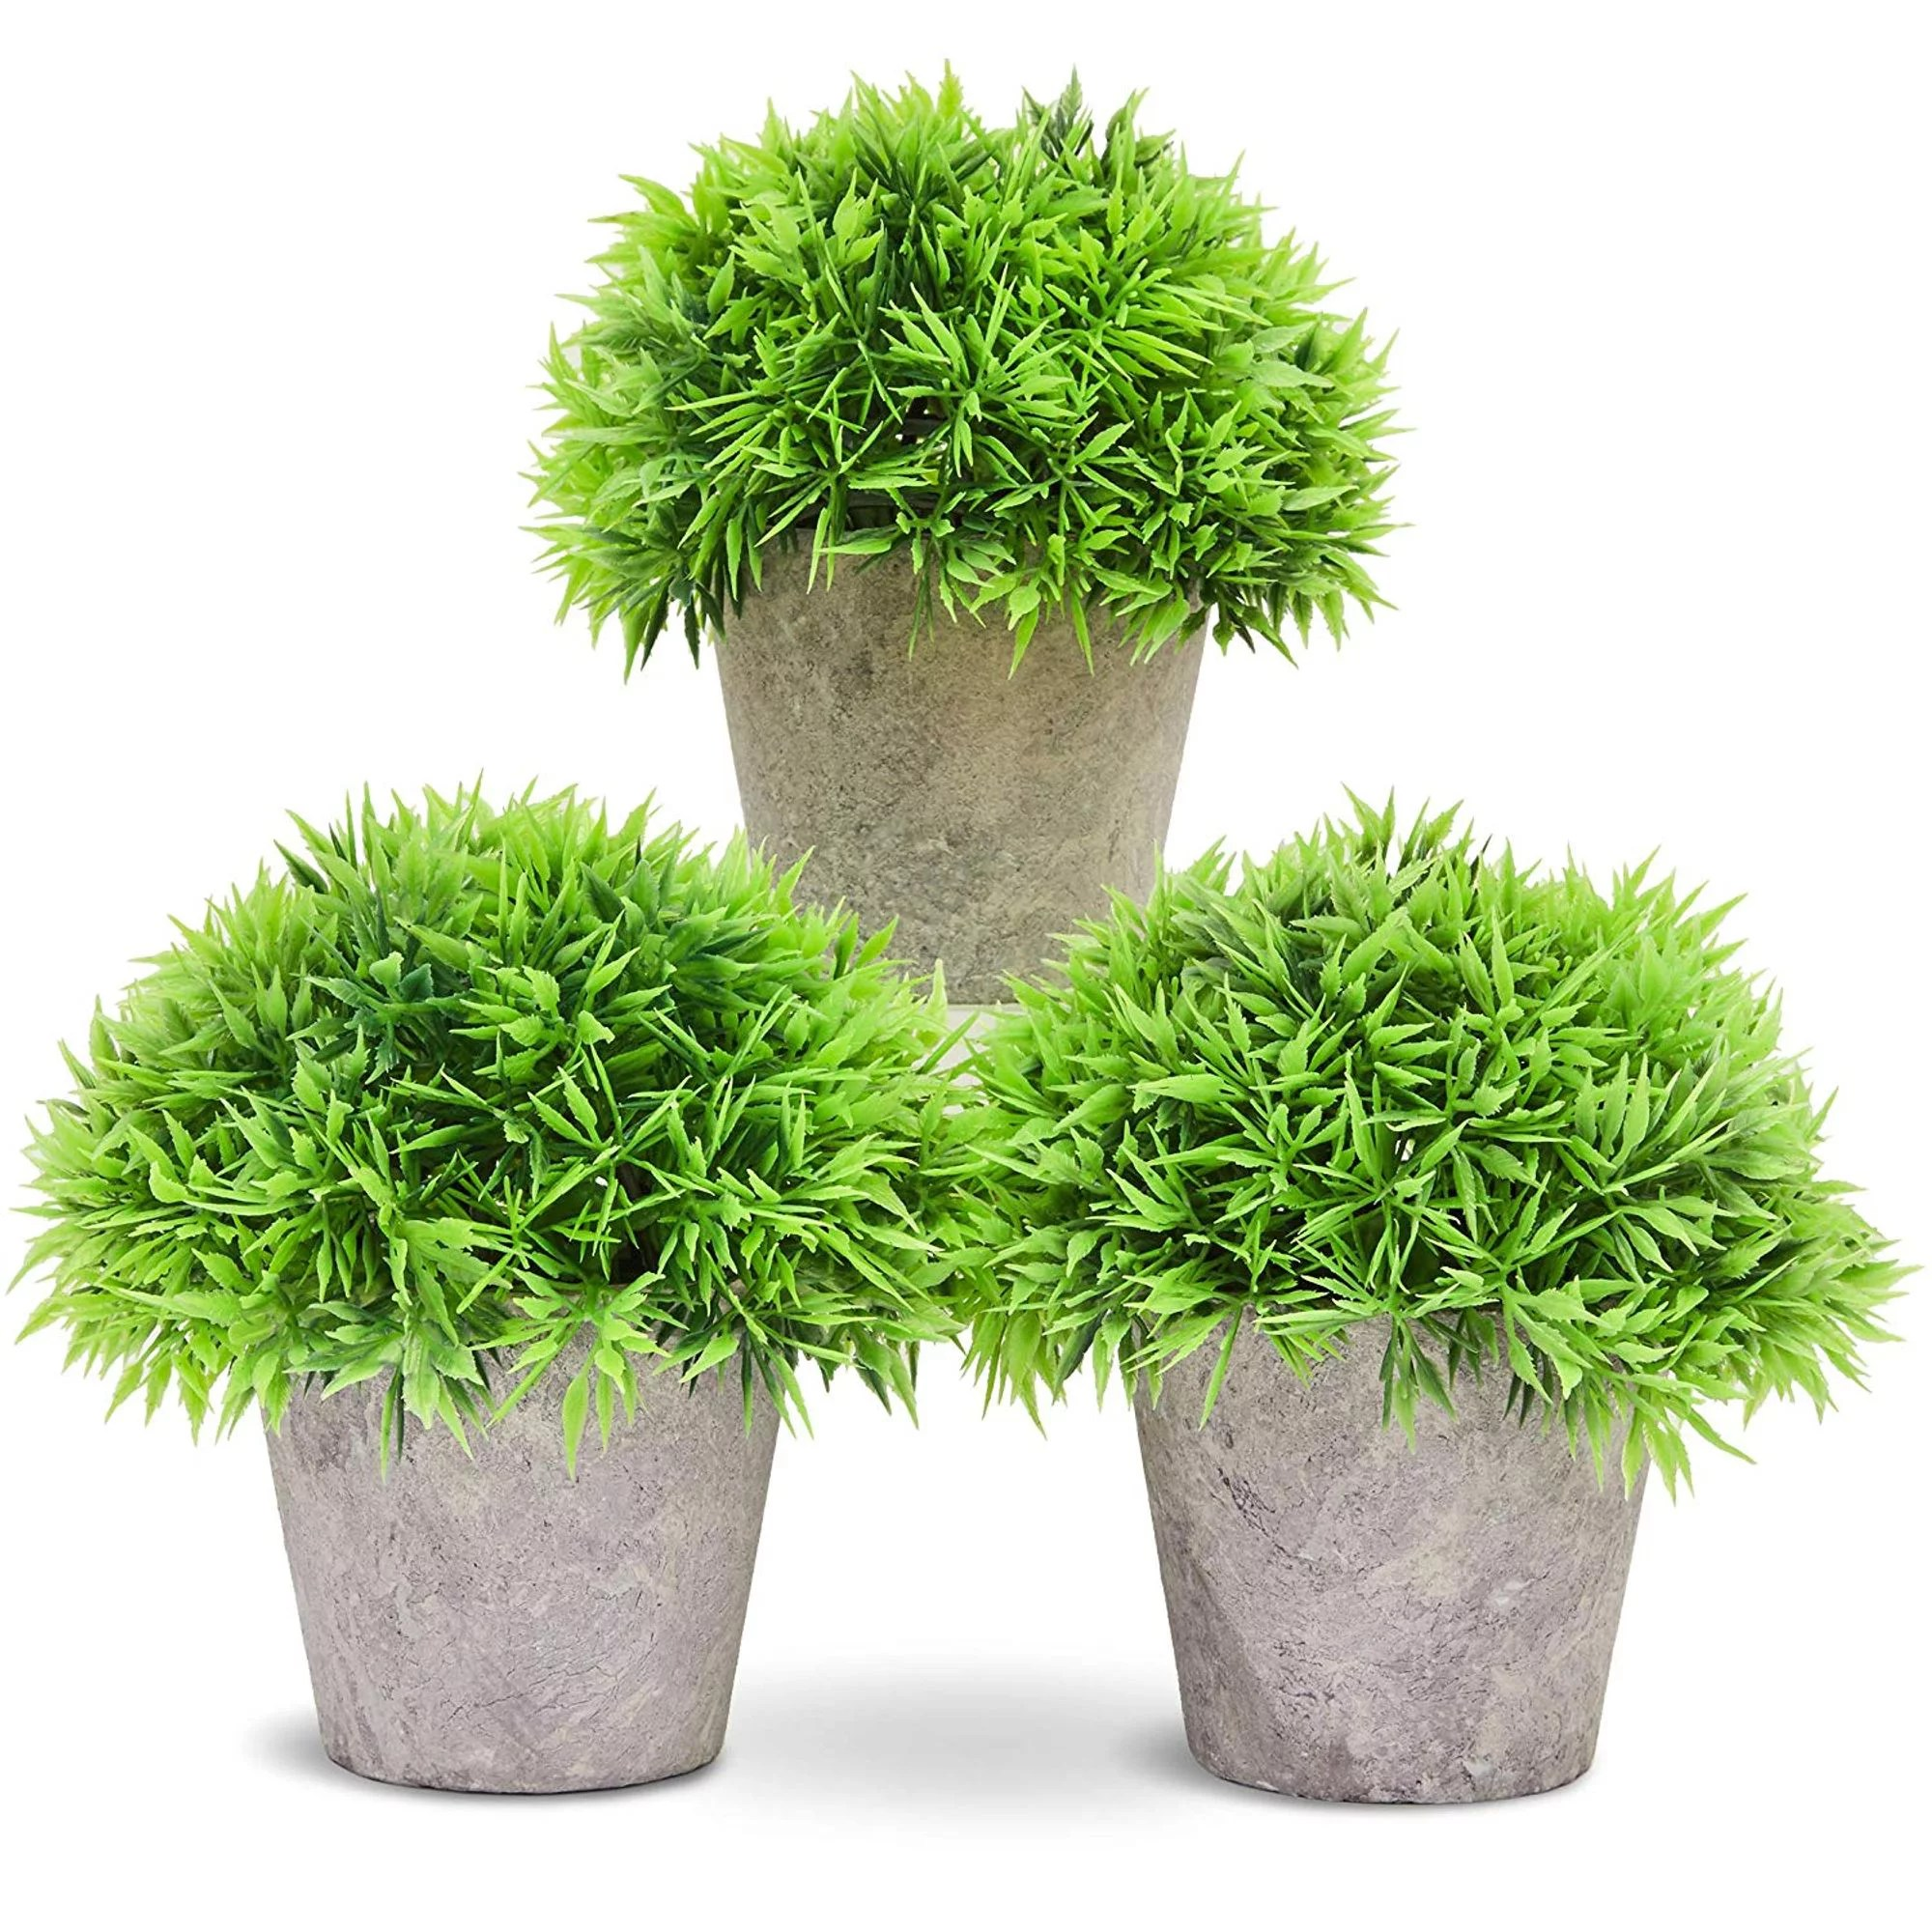 Fake Plant Decoration Set Of 3 Potted Artificial House Plants Fake Plant Decor Green Decorative Small Artificial Plants For Home Decorindoor With White Paper Pulp Pots 5 X 4 2 X 5 Inches Walmart Canada